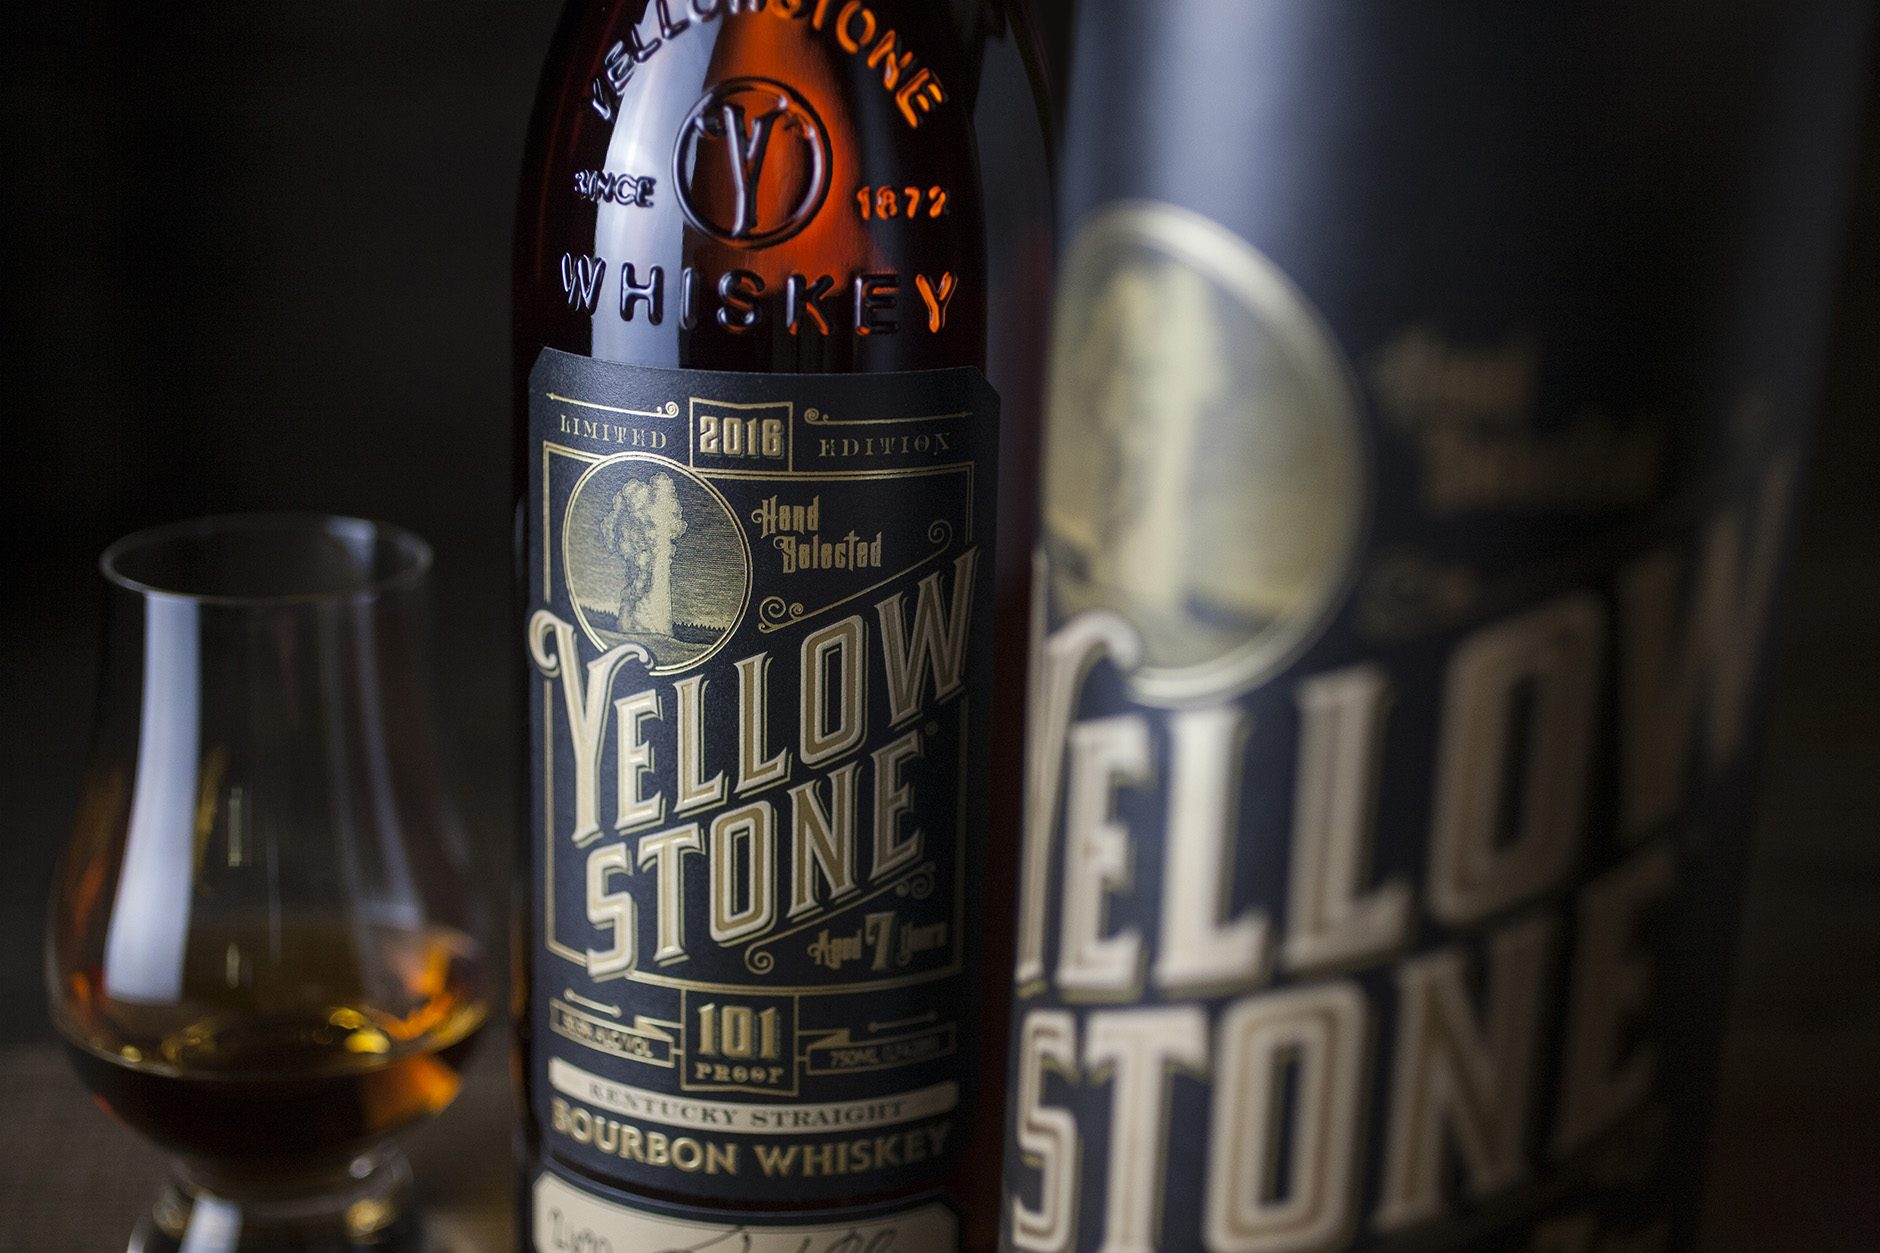 Yellowstone Limited Bourbon